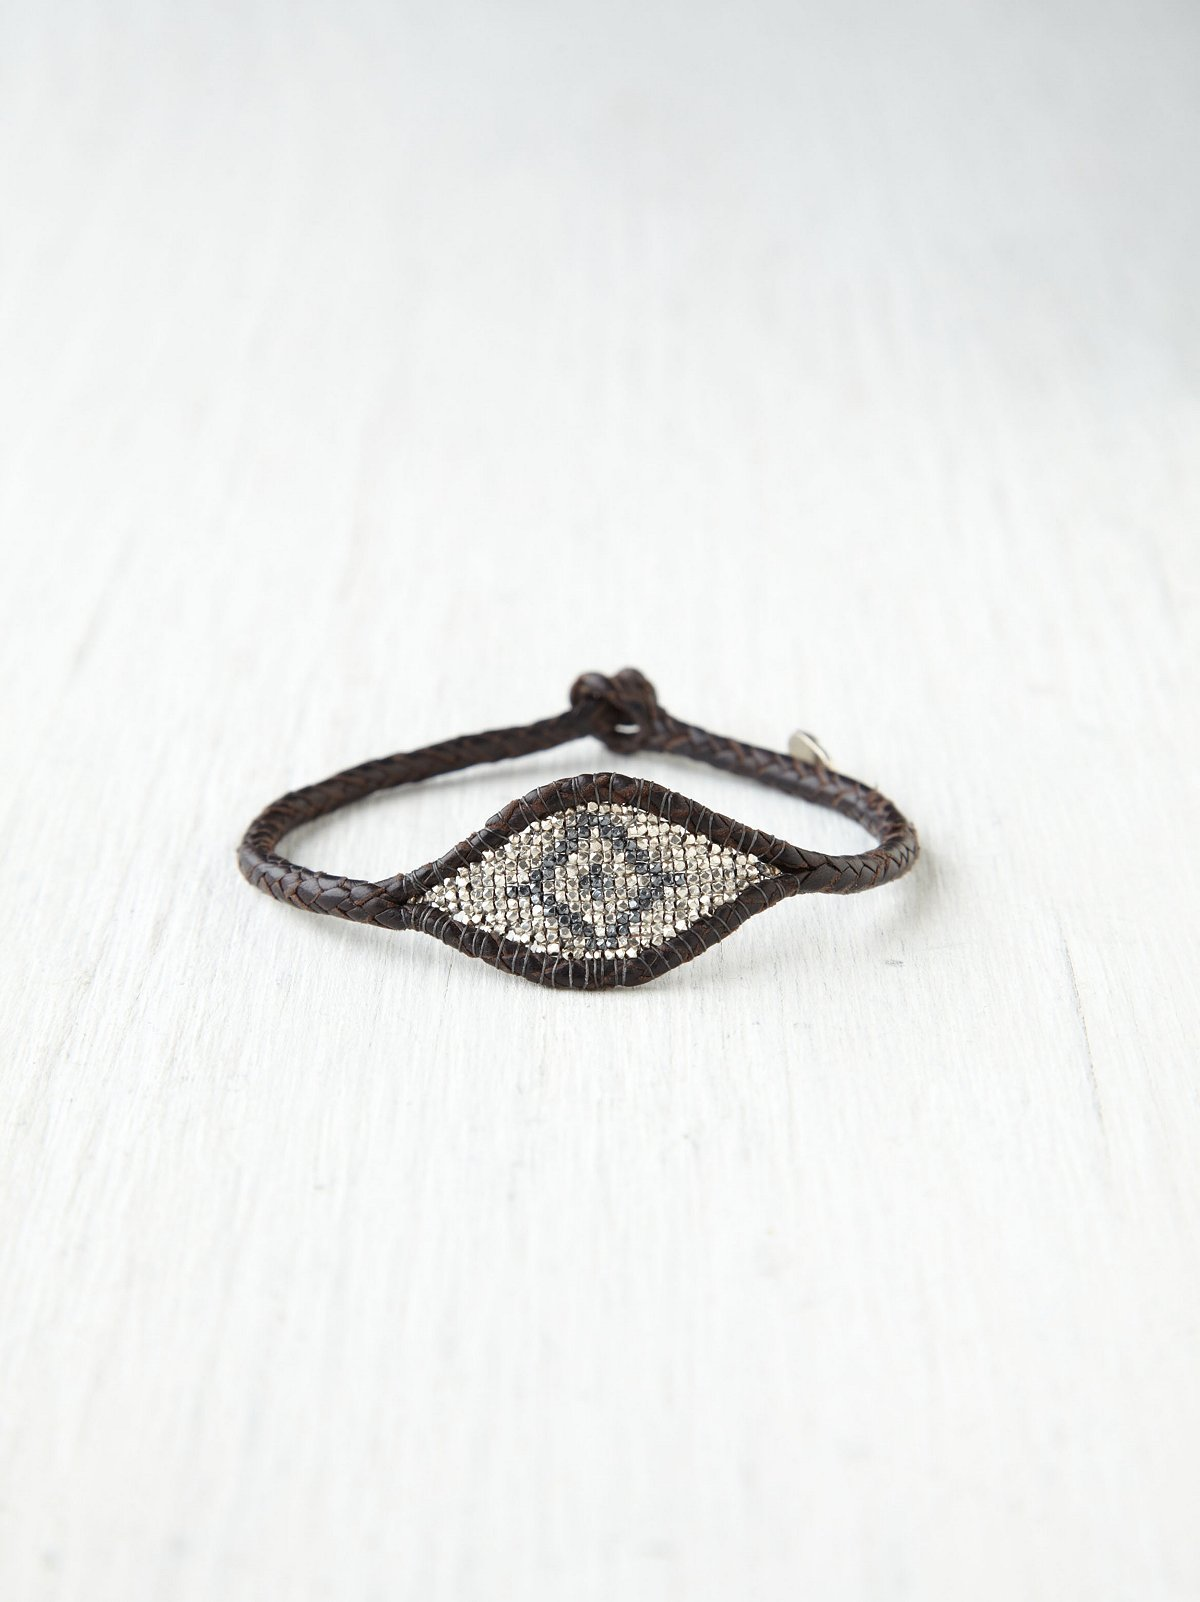 Leather Beaded Eye Bracelet